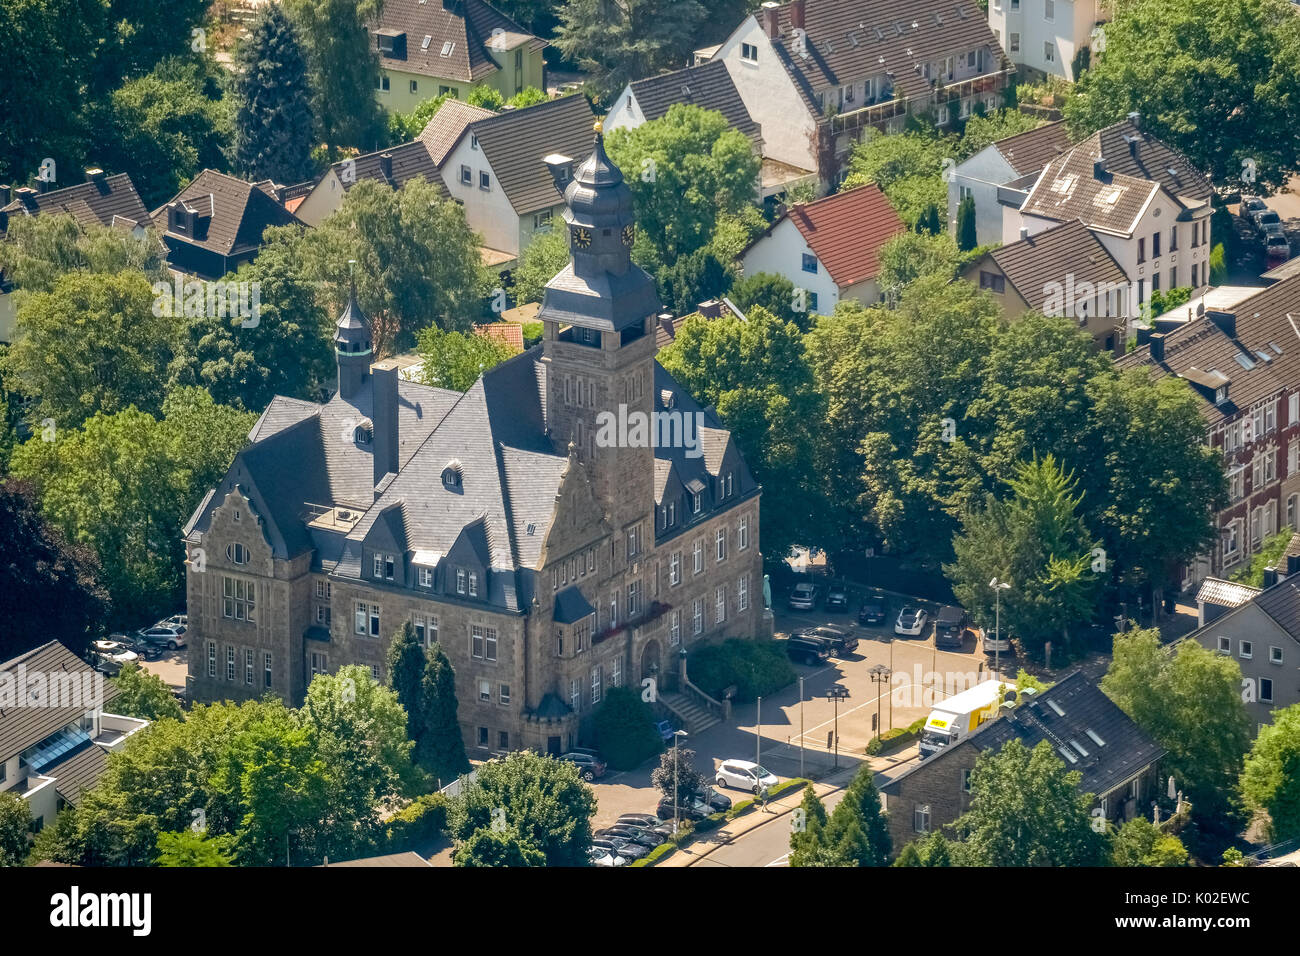 City Council Wetter (Ruhr), Town Hall, a listed secular, Wetter (Ruhr), Ruhr, Nordrhein-Westfalen, Germany, Europe, Hagen, aerial view, aerial view, a - Stock Image